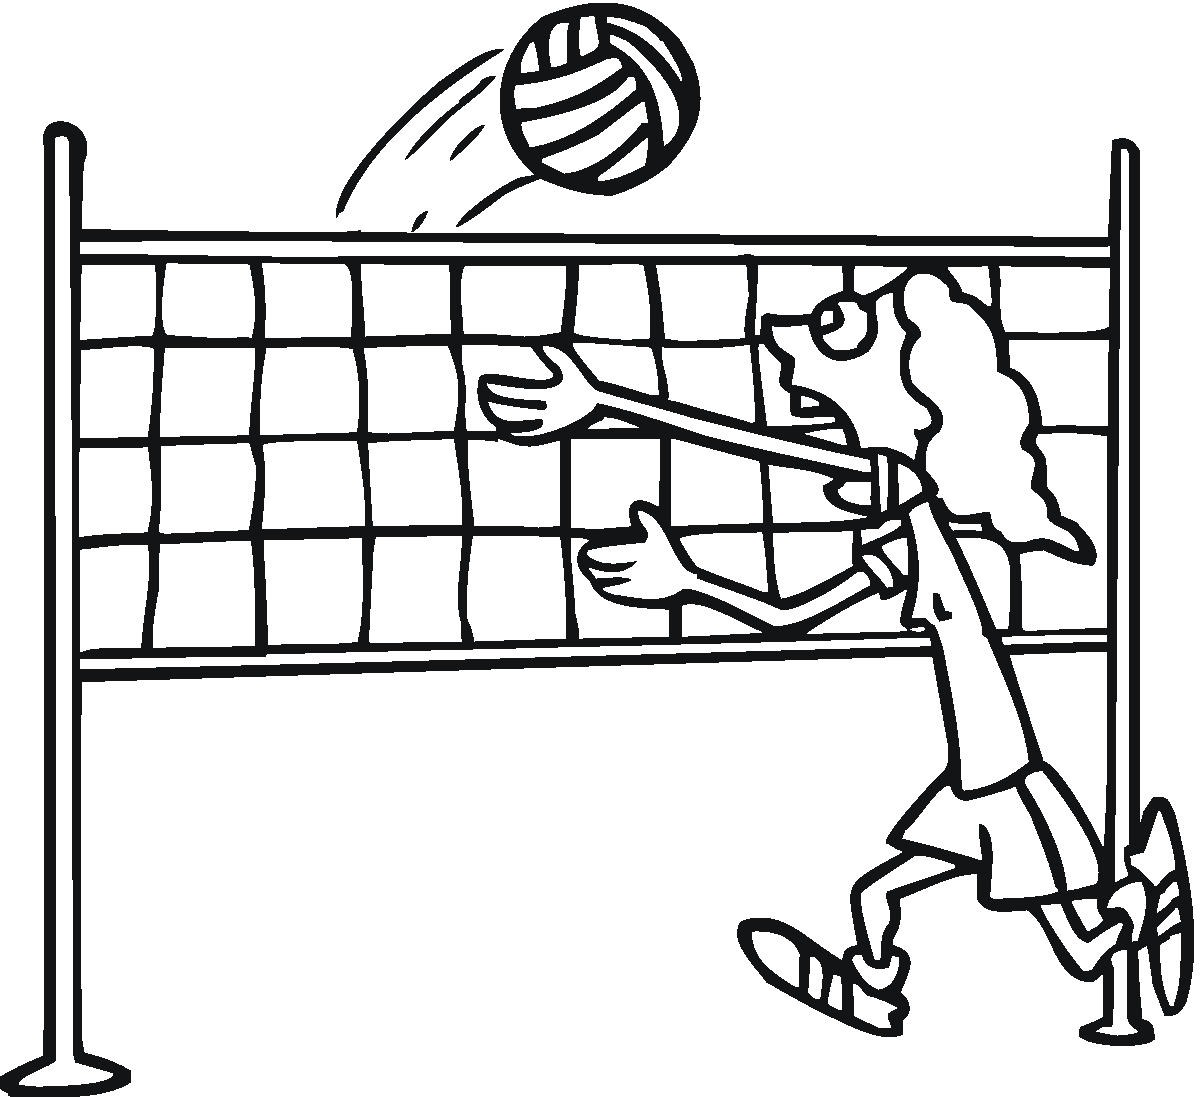 1200x1097 Image Of Volleyball Clipart Black And White